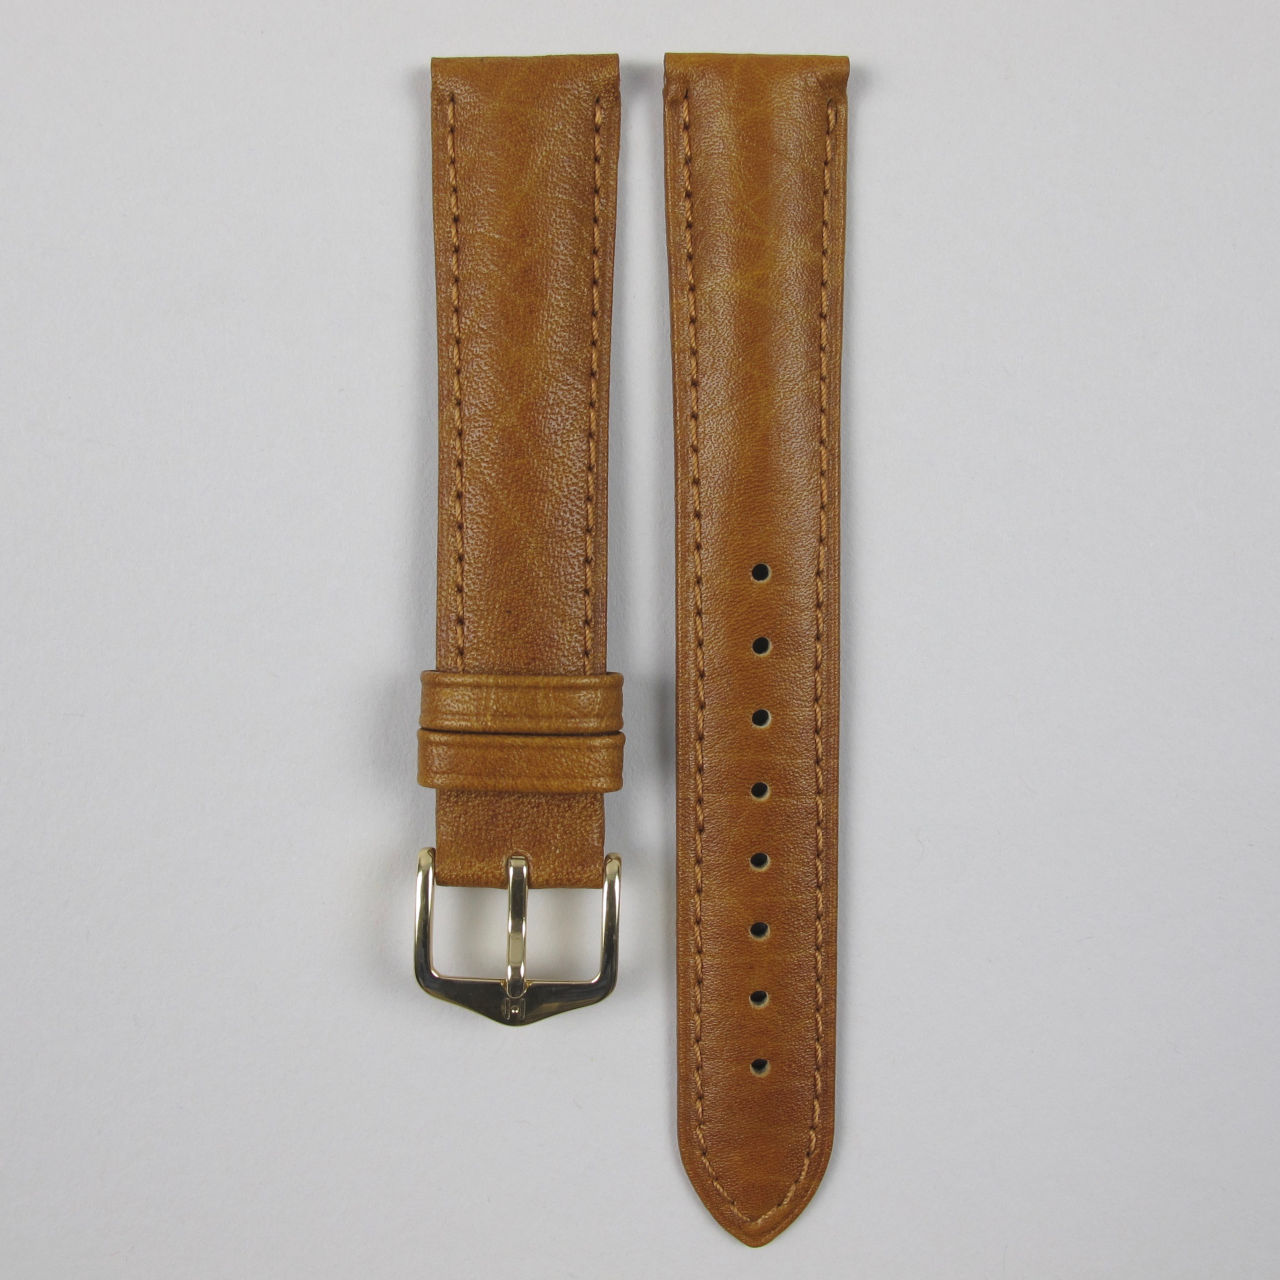 Hirsch Camelgrain honey coloured lightly textured wristwatch strap